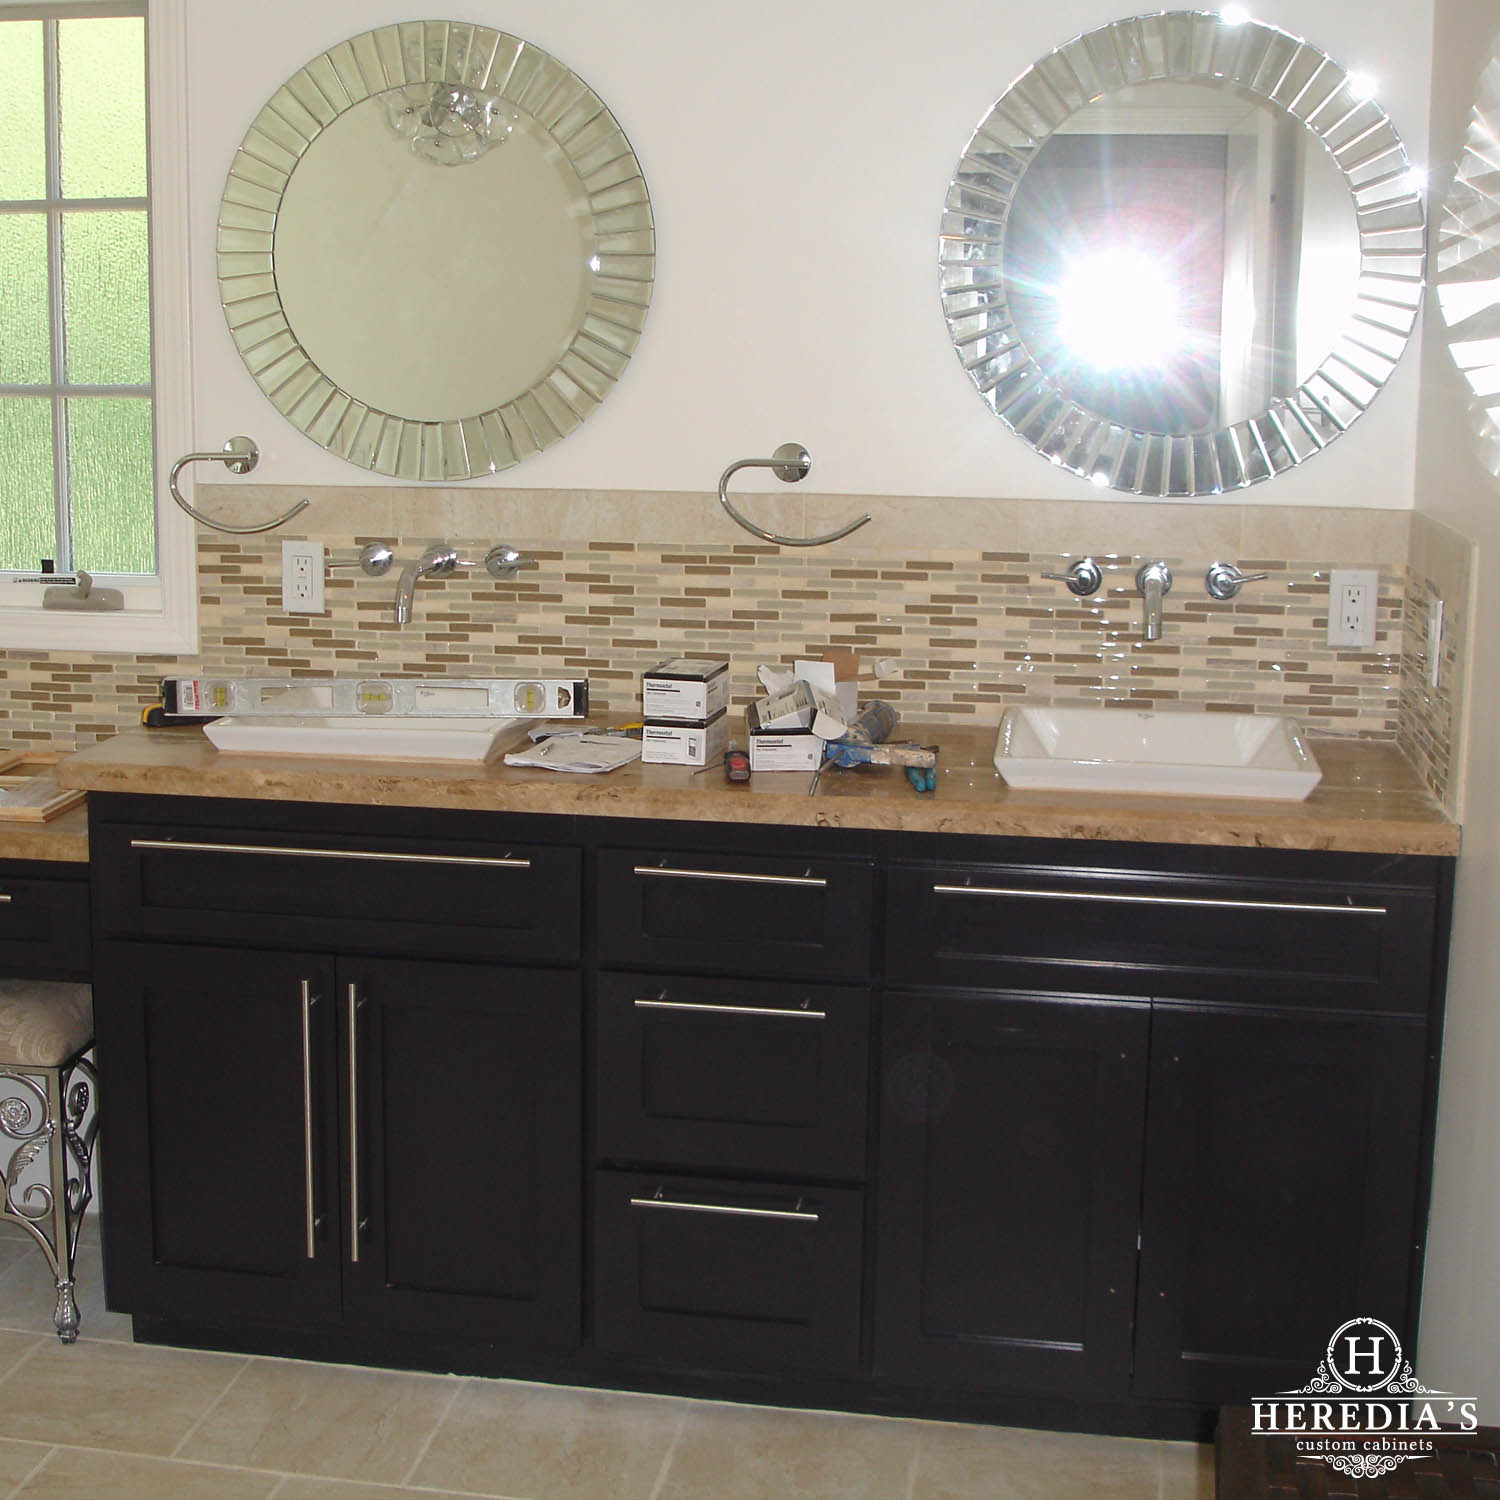 htsrec bathroom of semi bathrooms custom vanity com best full cabinet size cabinets vanities large on photos